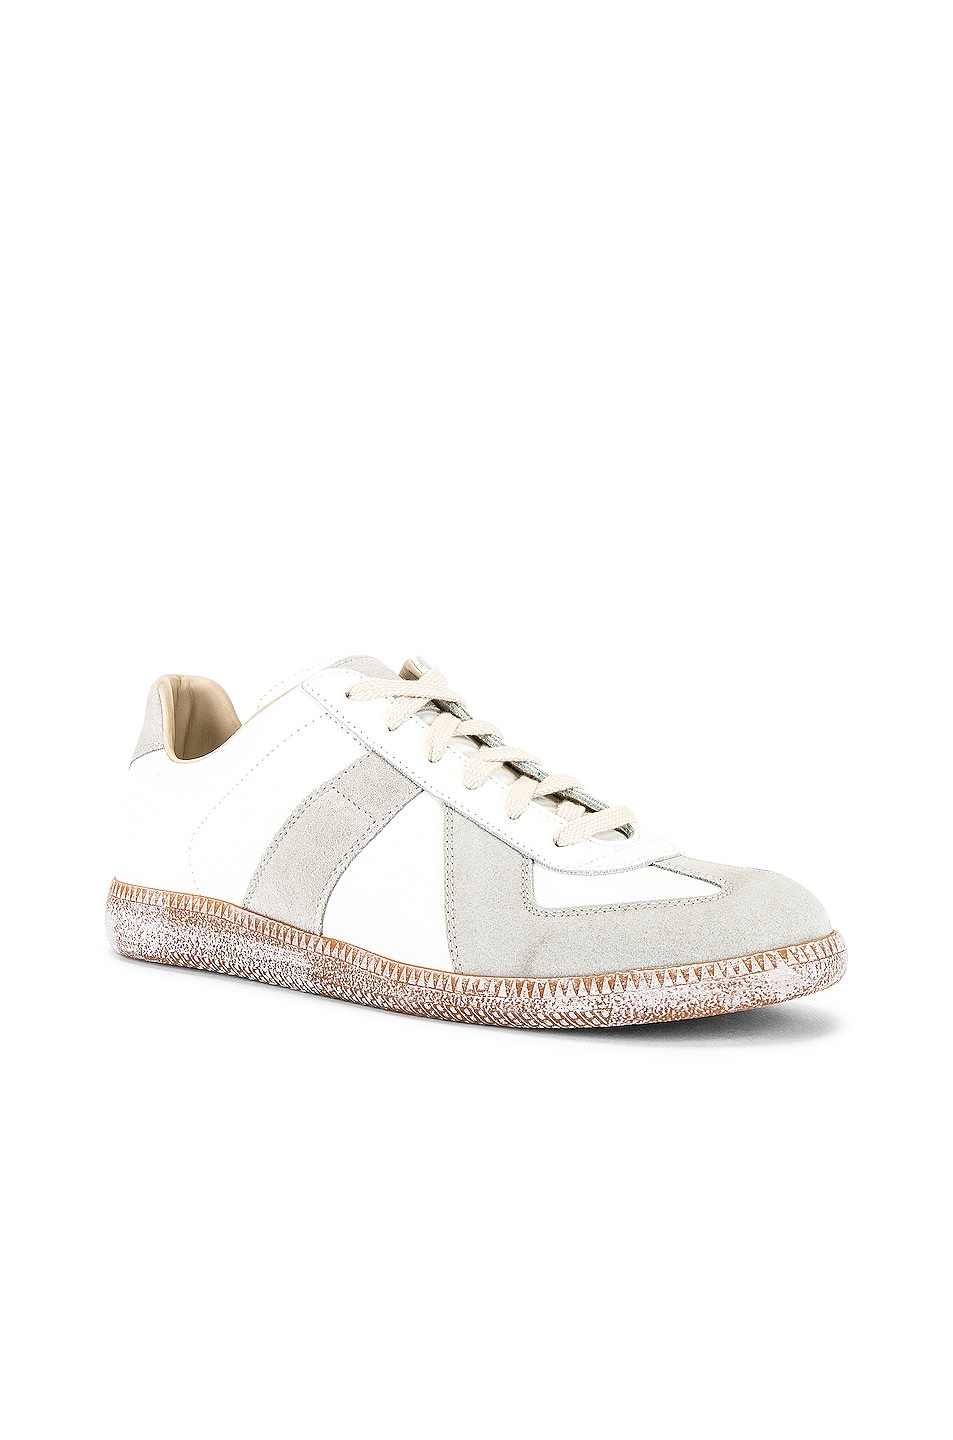 Image 1 of Maison Margiela Replica Low Top Vintage Sneaker in Off-White & Honey Sole